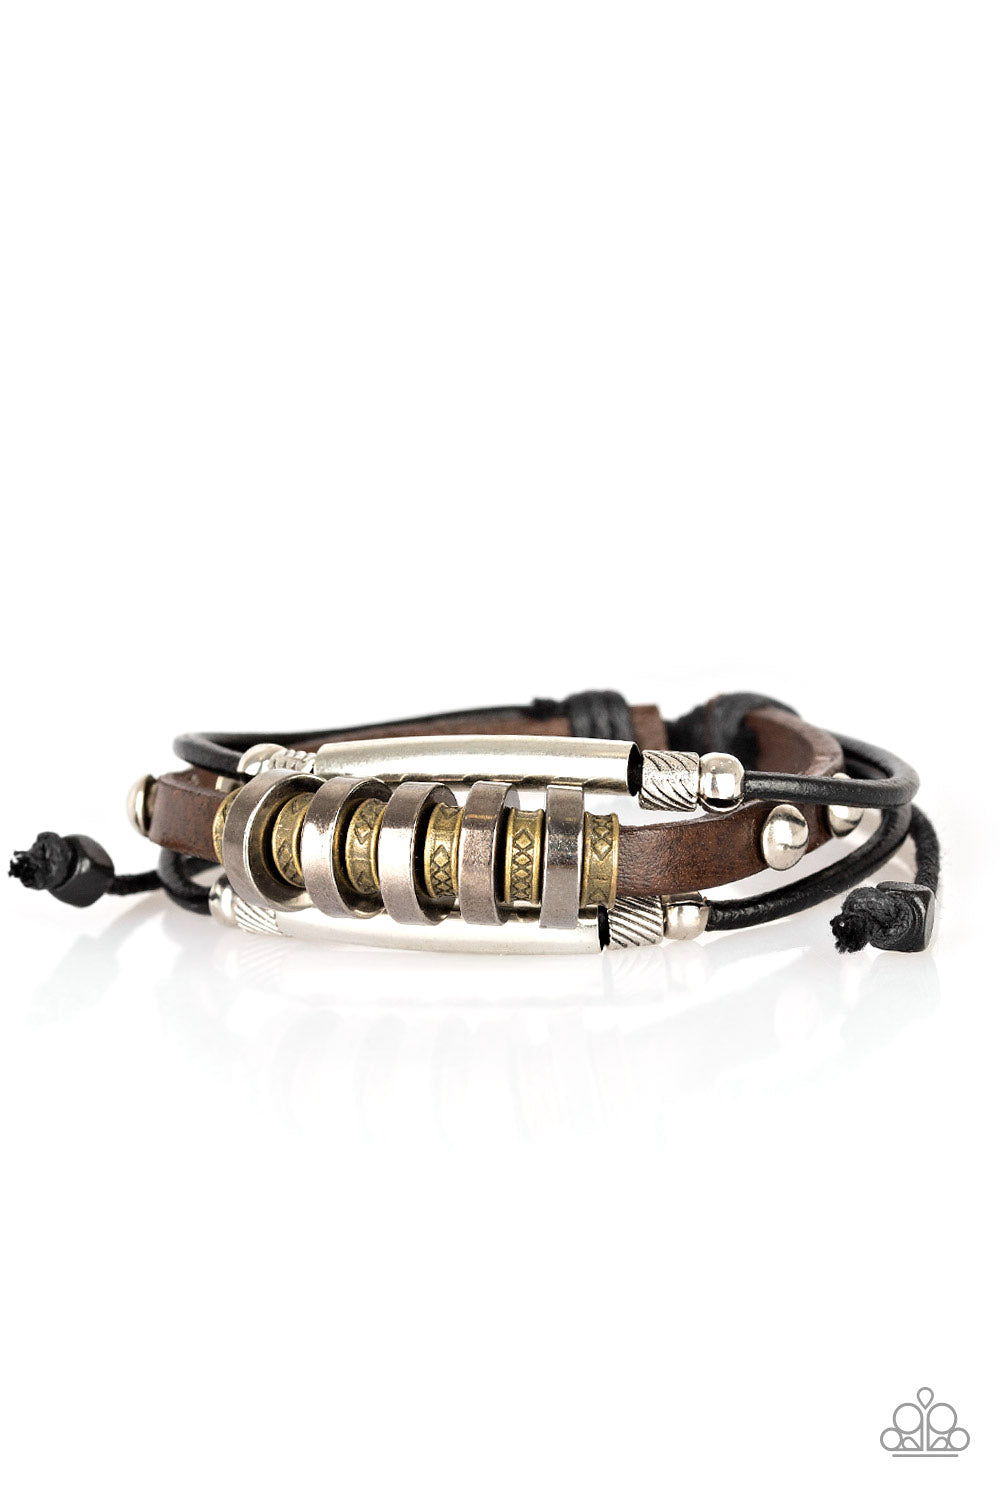 Paparazzi Urban Backpack Black & Brown Leather Bracelet